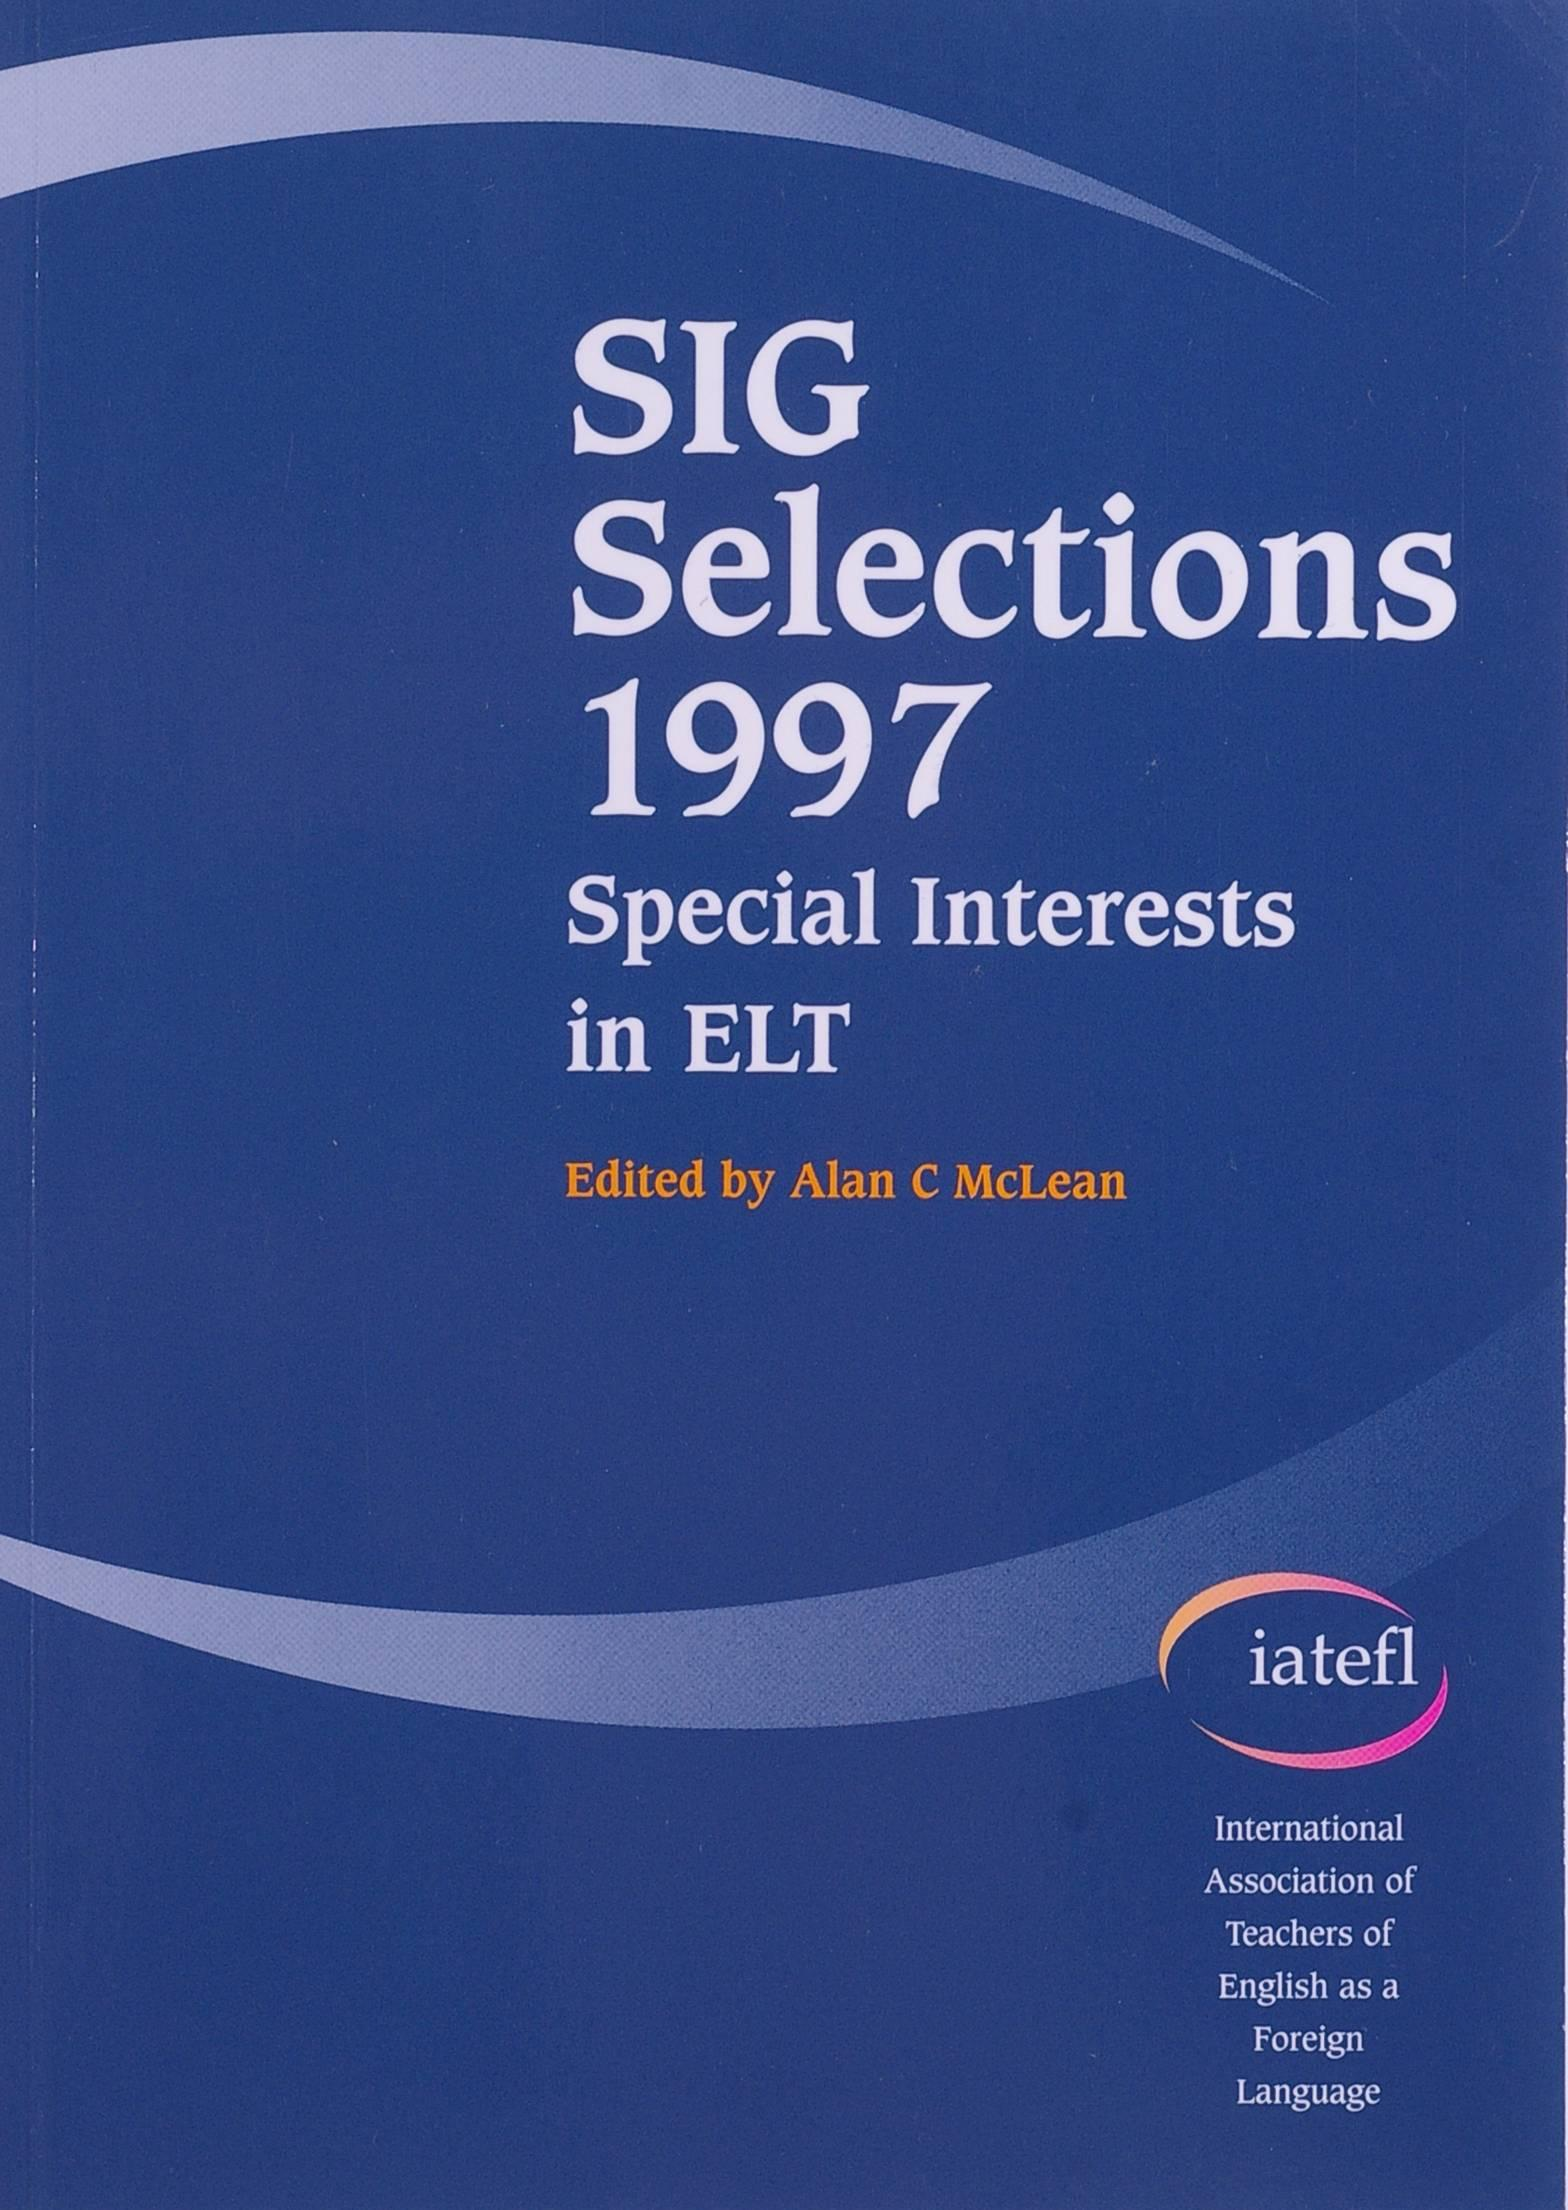 Picture of IATEFL SIG Selections: Special Interests in ELT